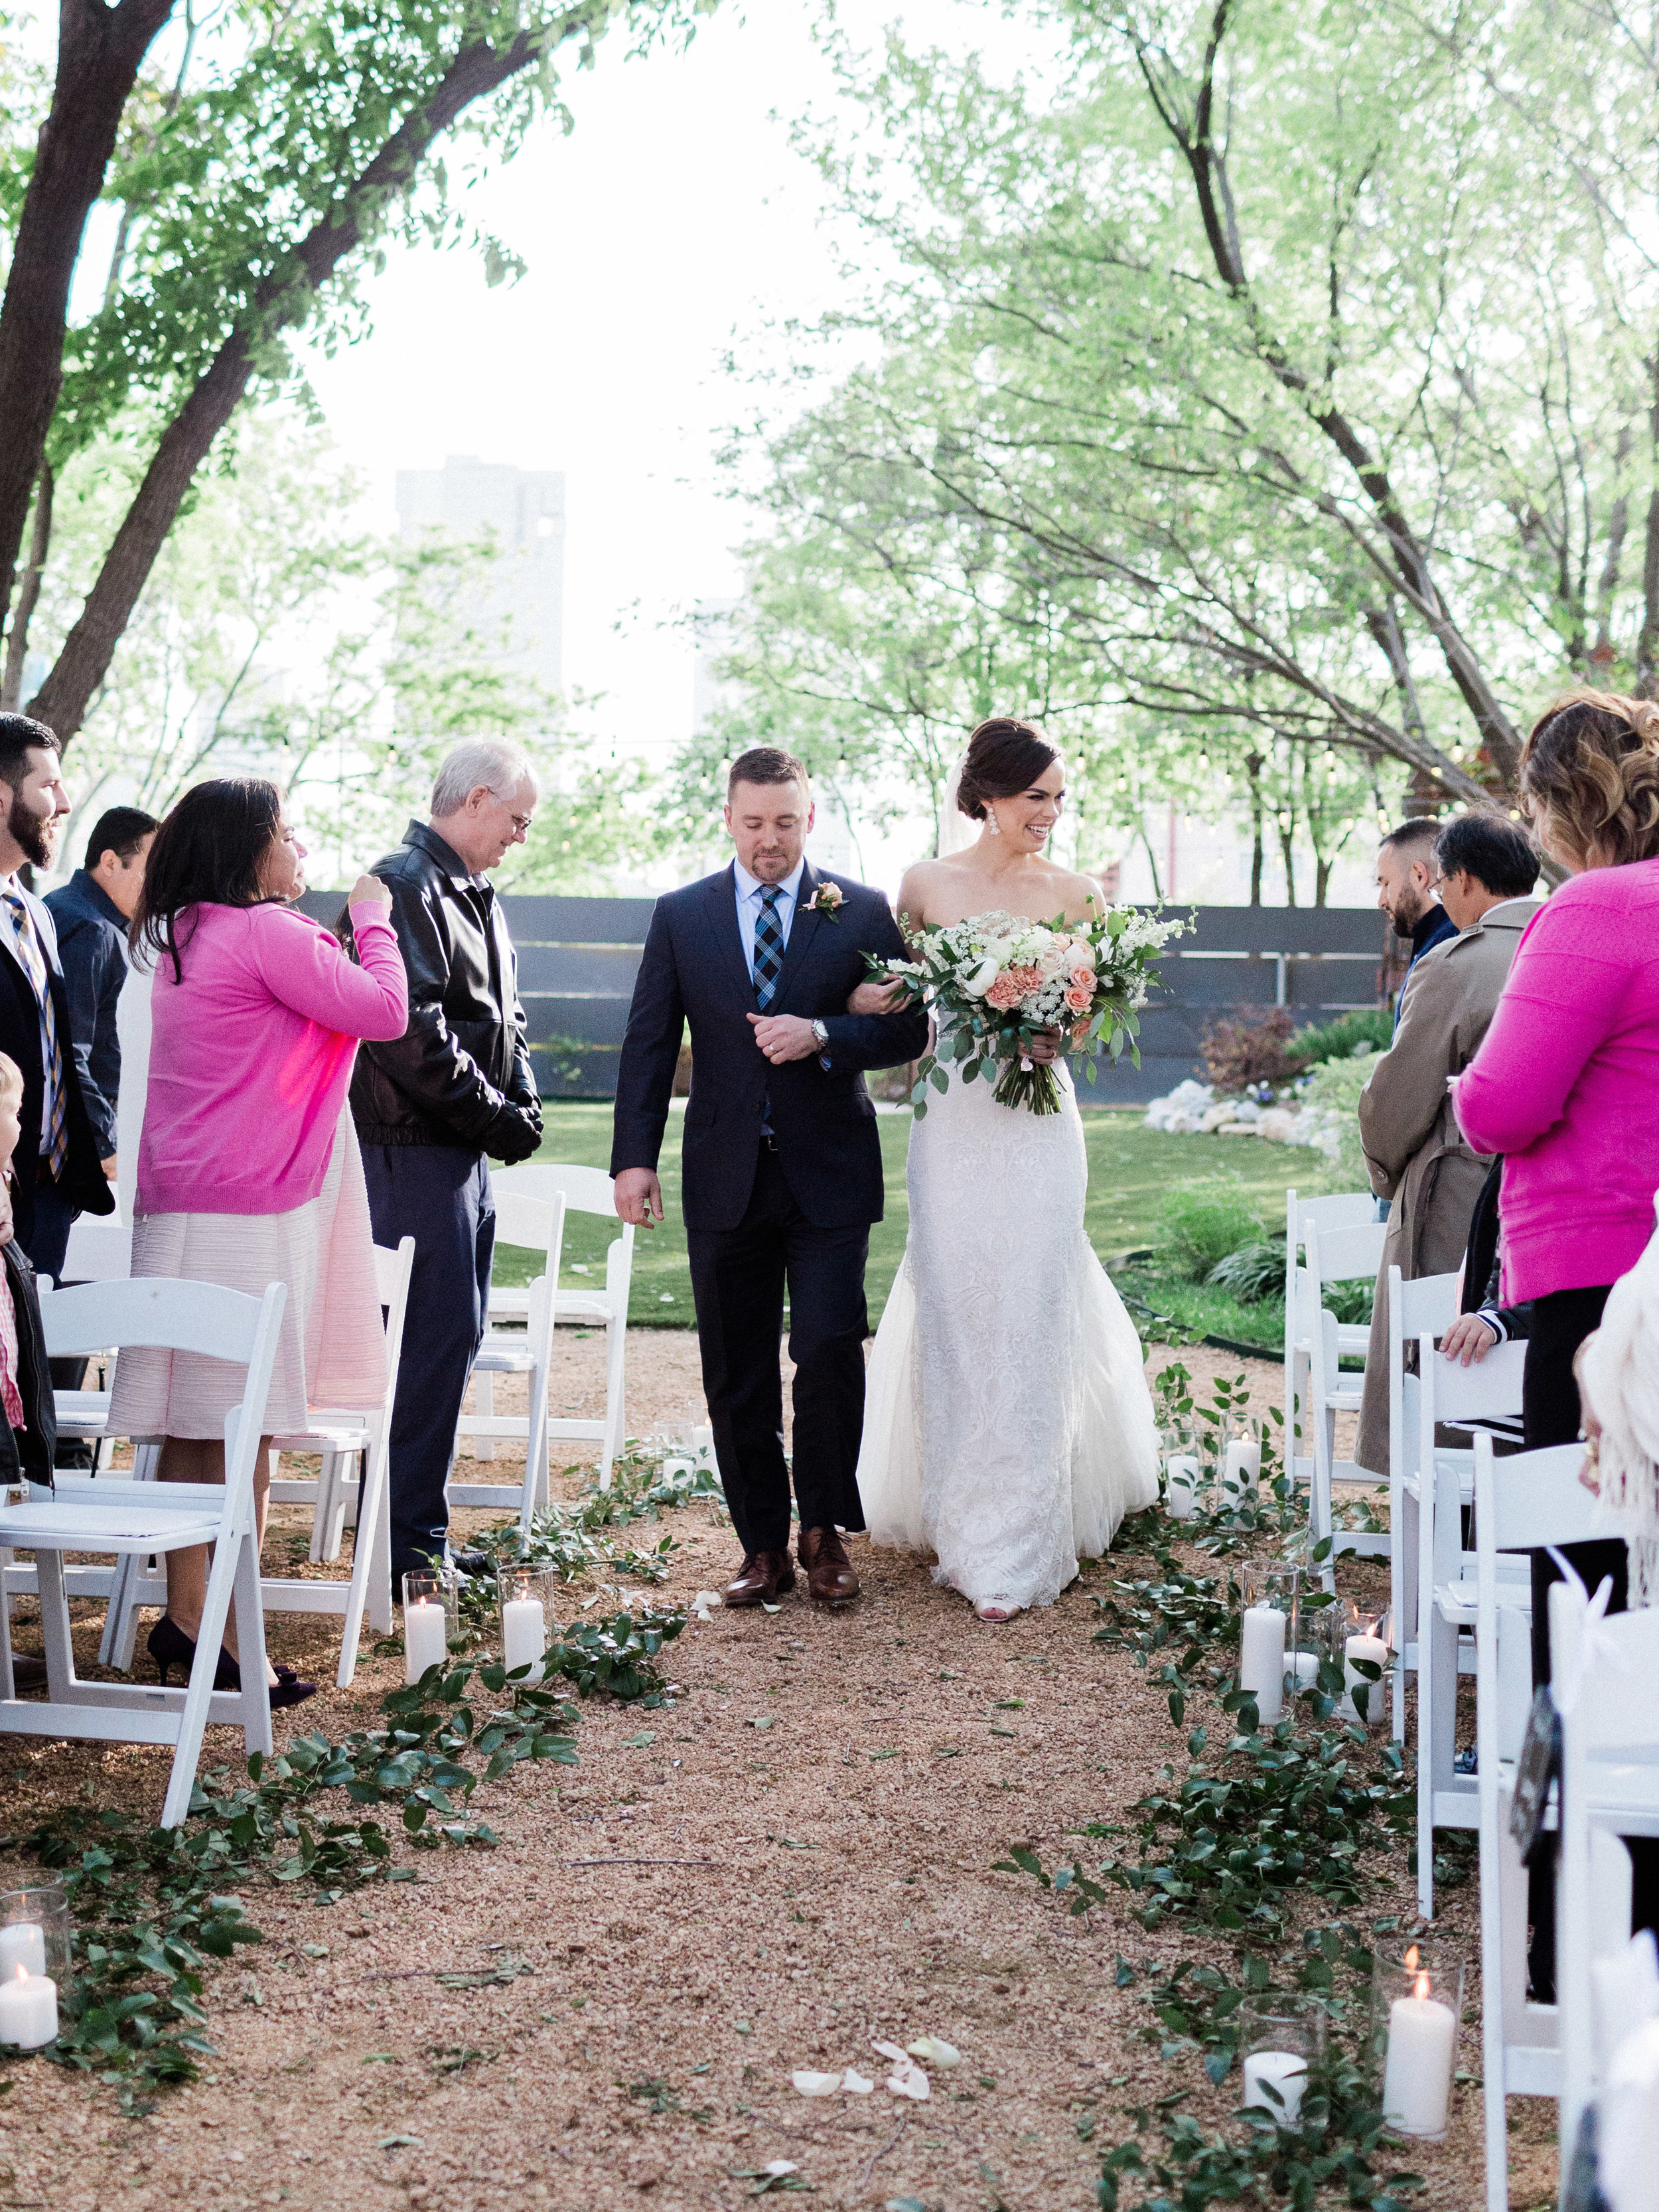 Ceremony at Outdoor Wedding in Fort Worth Texas at Artspace 111